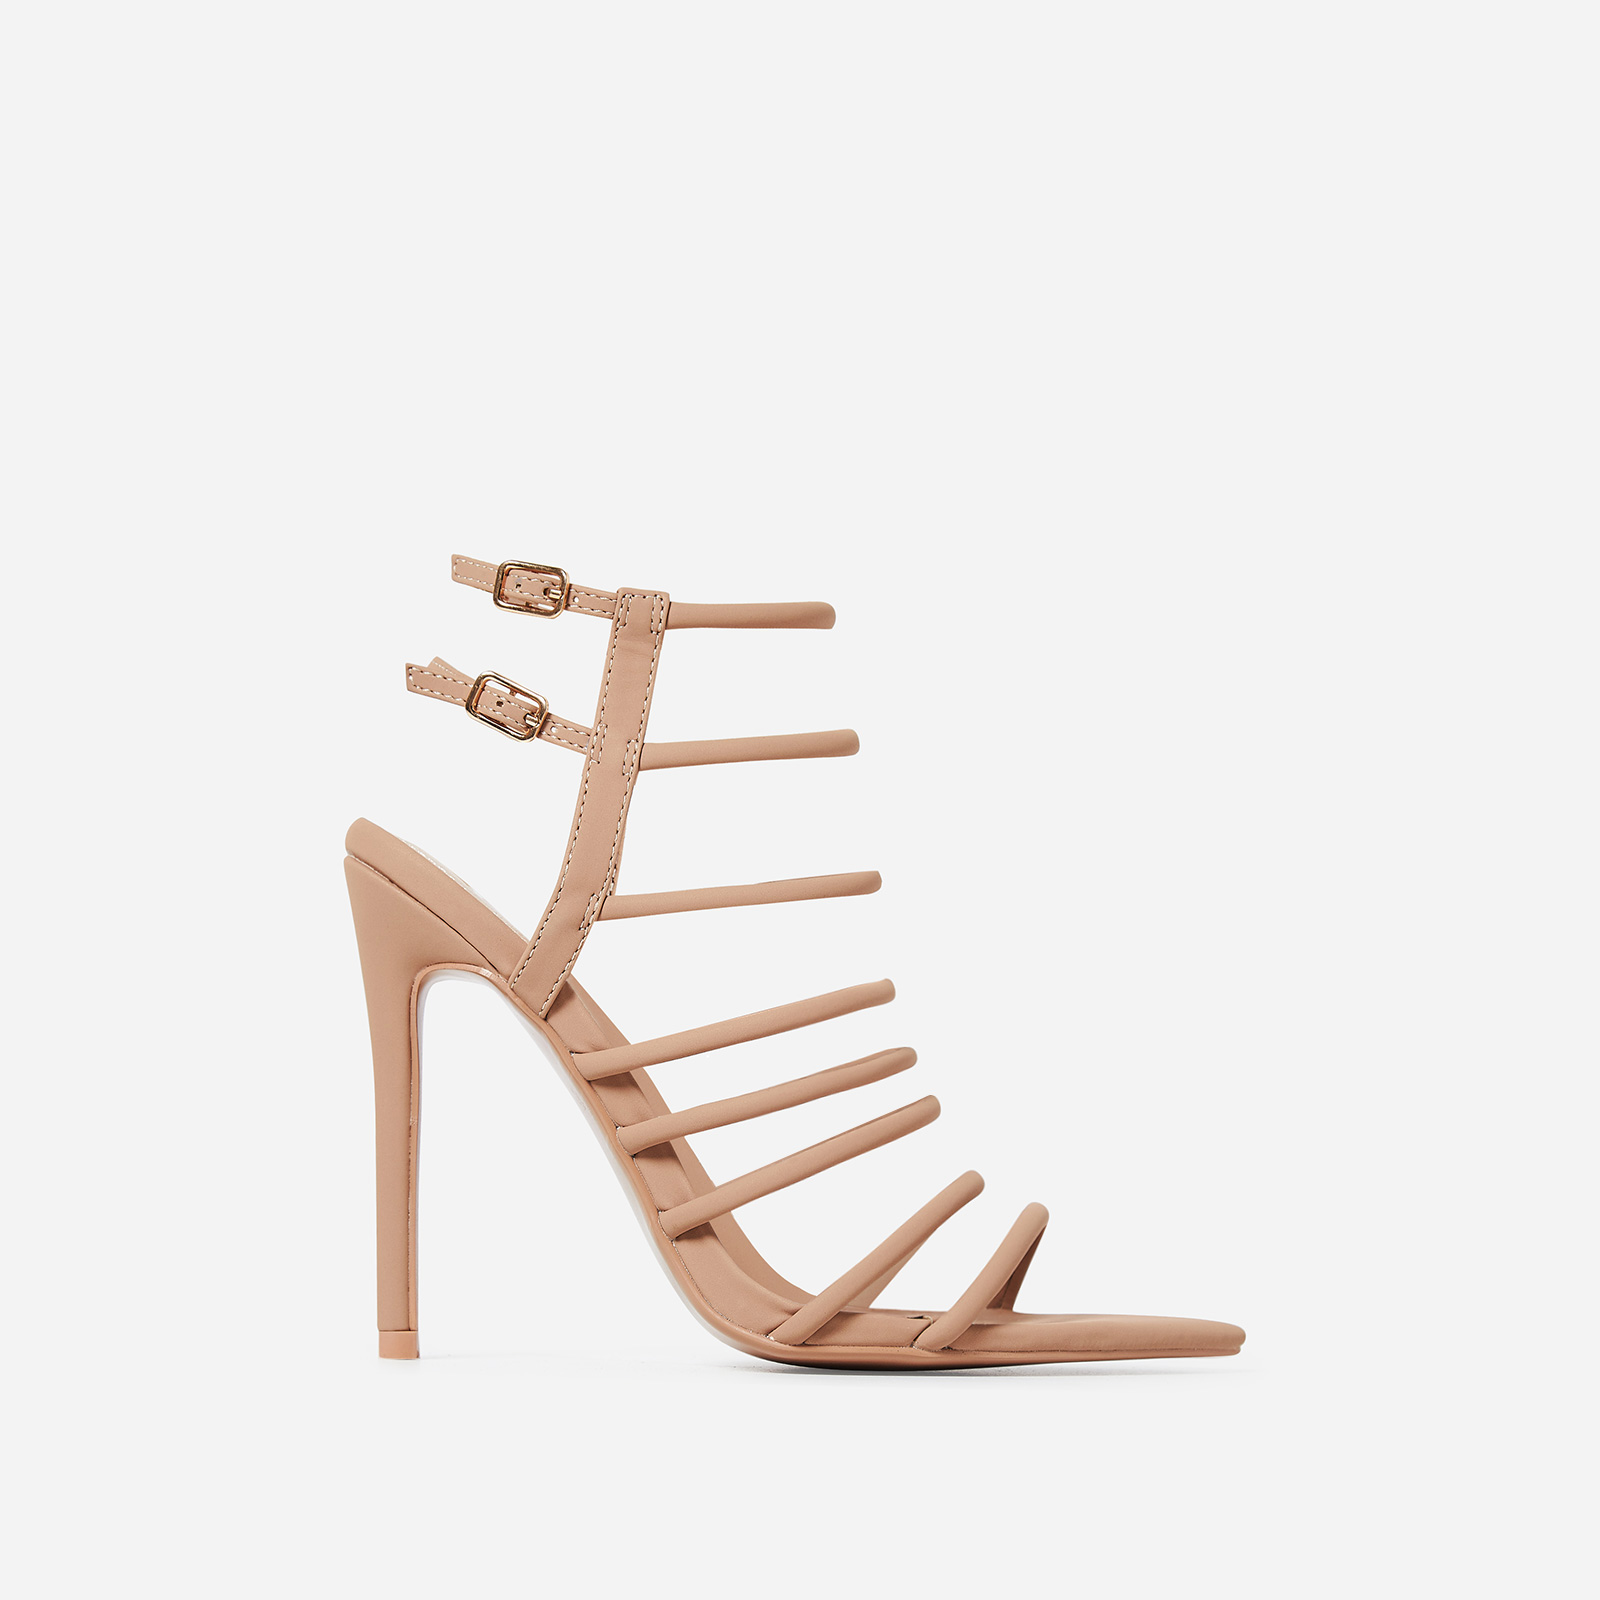 Endless Lace Up Heel In Nude Faux Leather